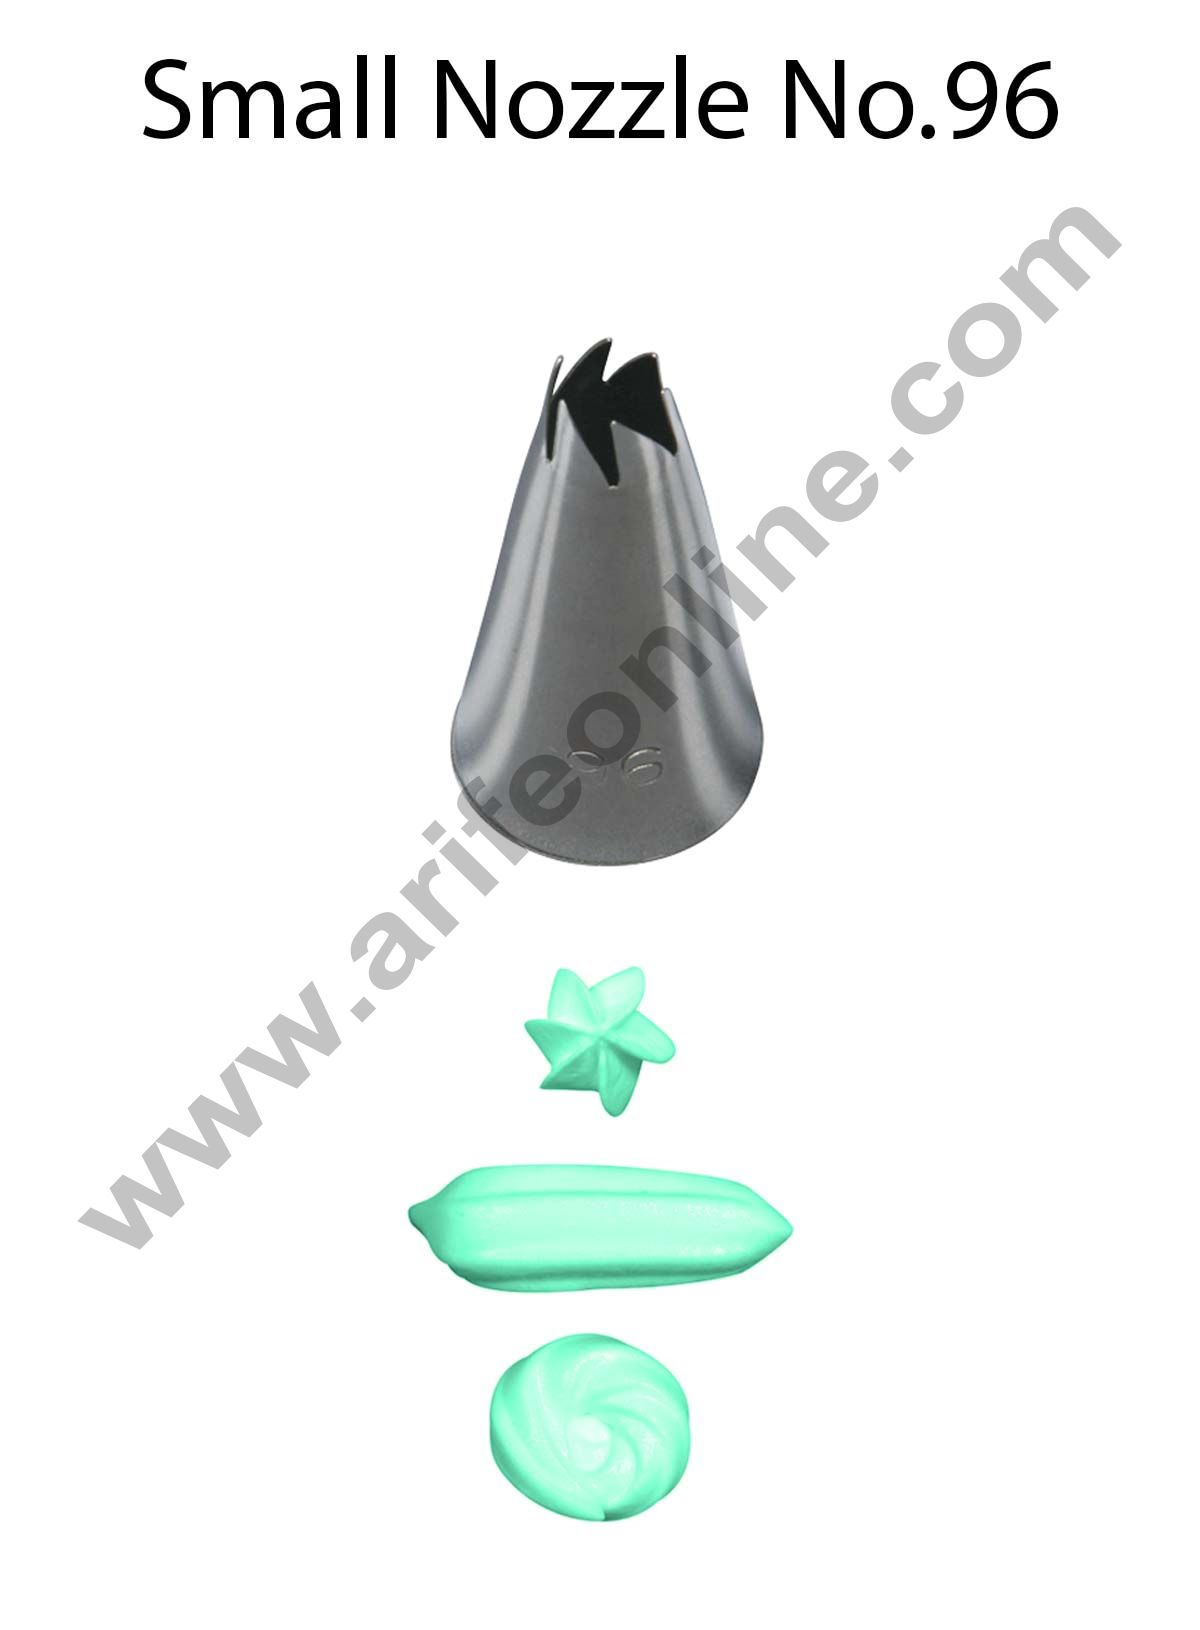 Cake Decor Small Nozzle - No. 96 Drop Flower Piping Nozzle